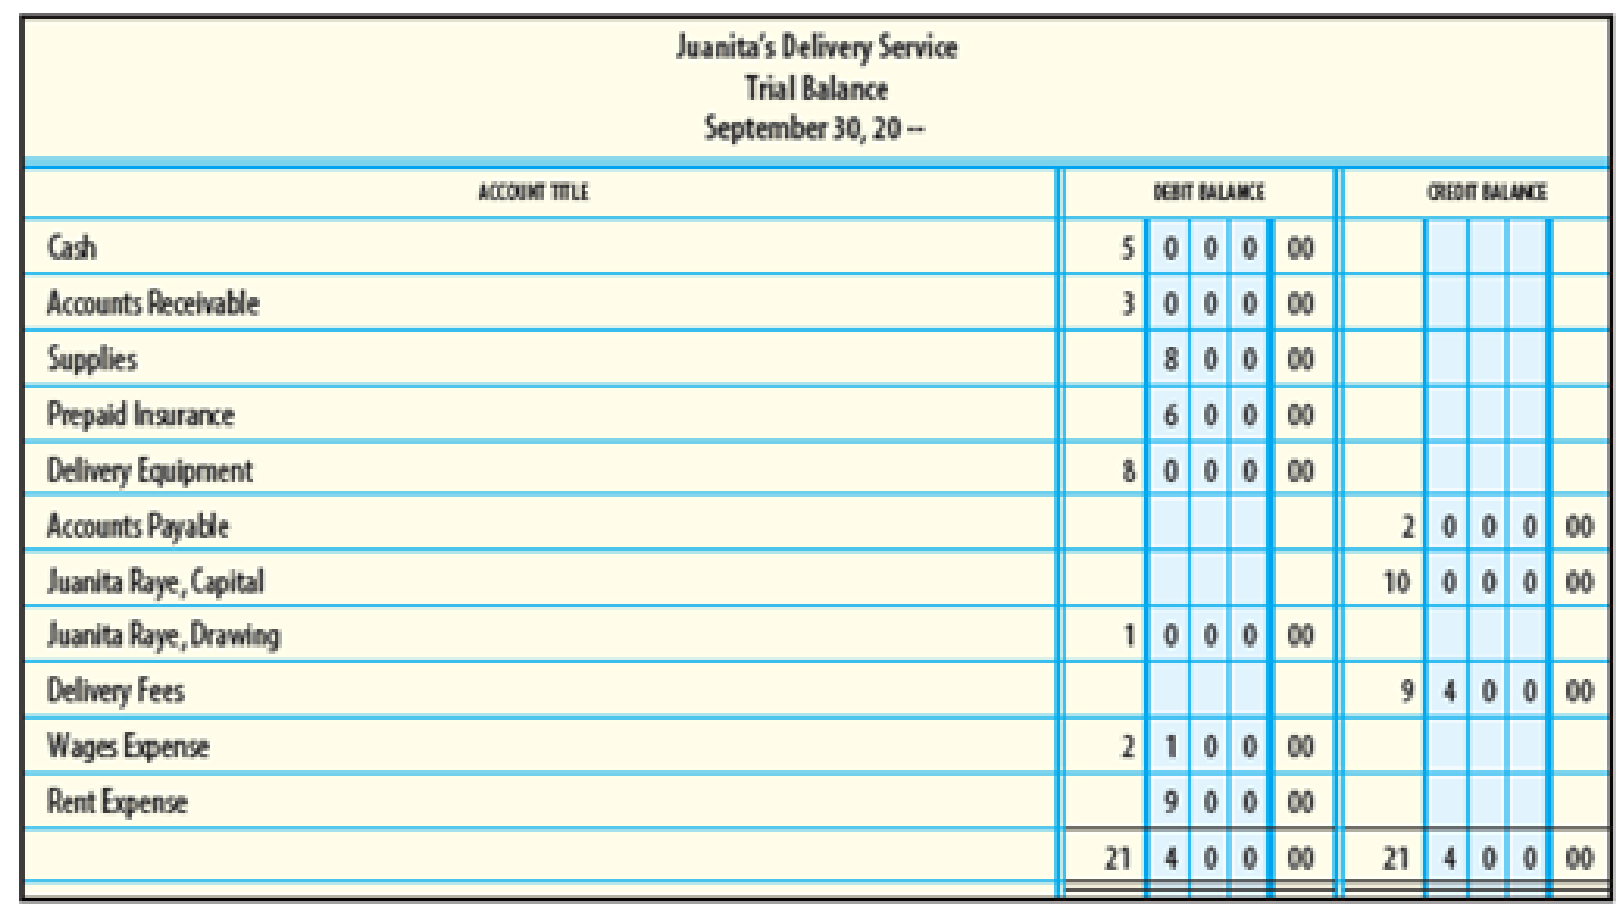 Chapter 3, Problem 11SEA, Provided below is a trial balance for Juanitas Delivery Service. Use this trial balance for